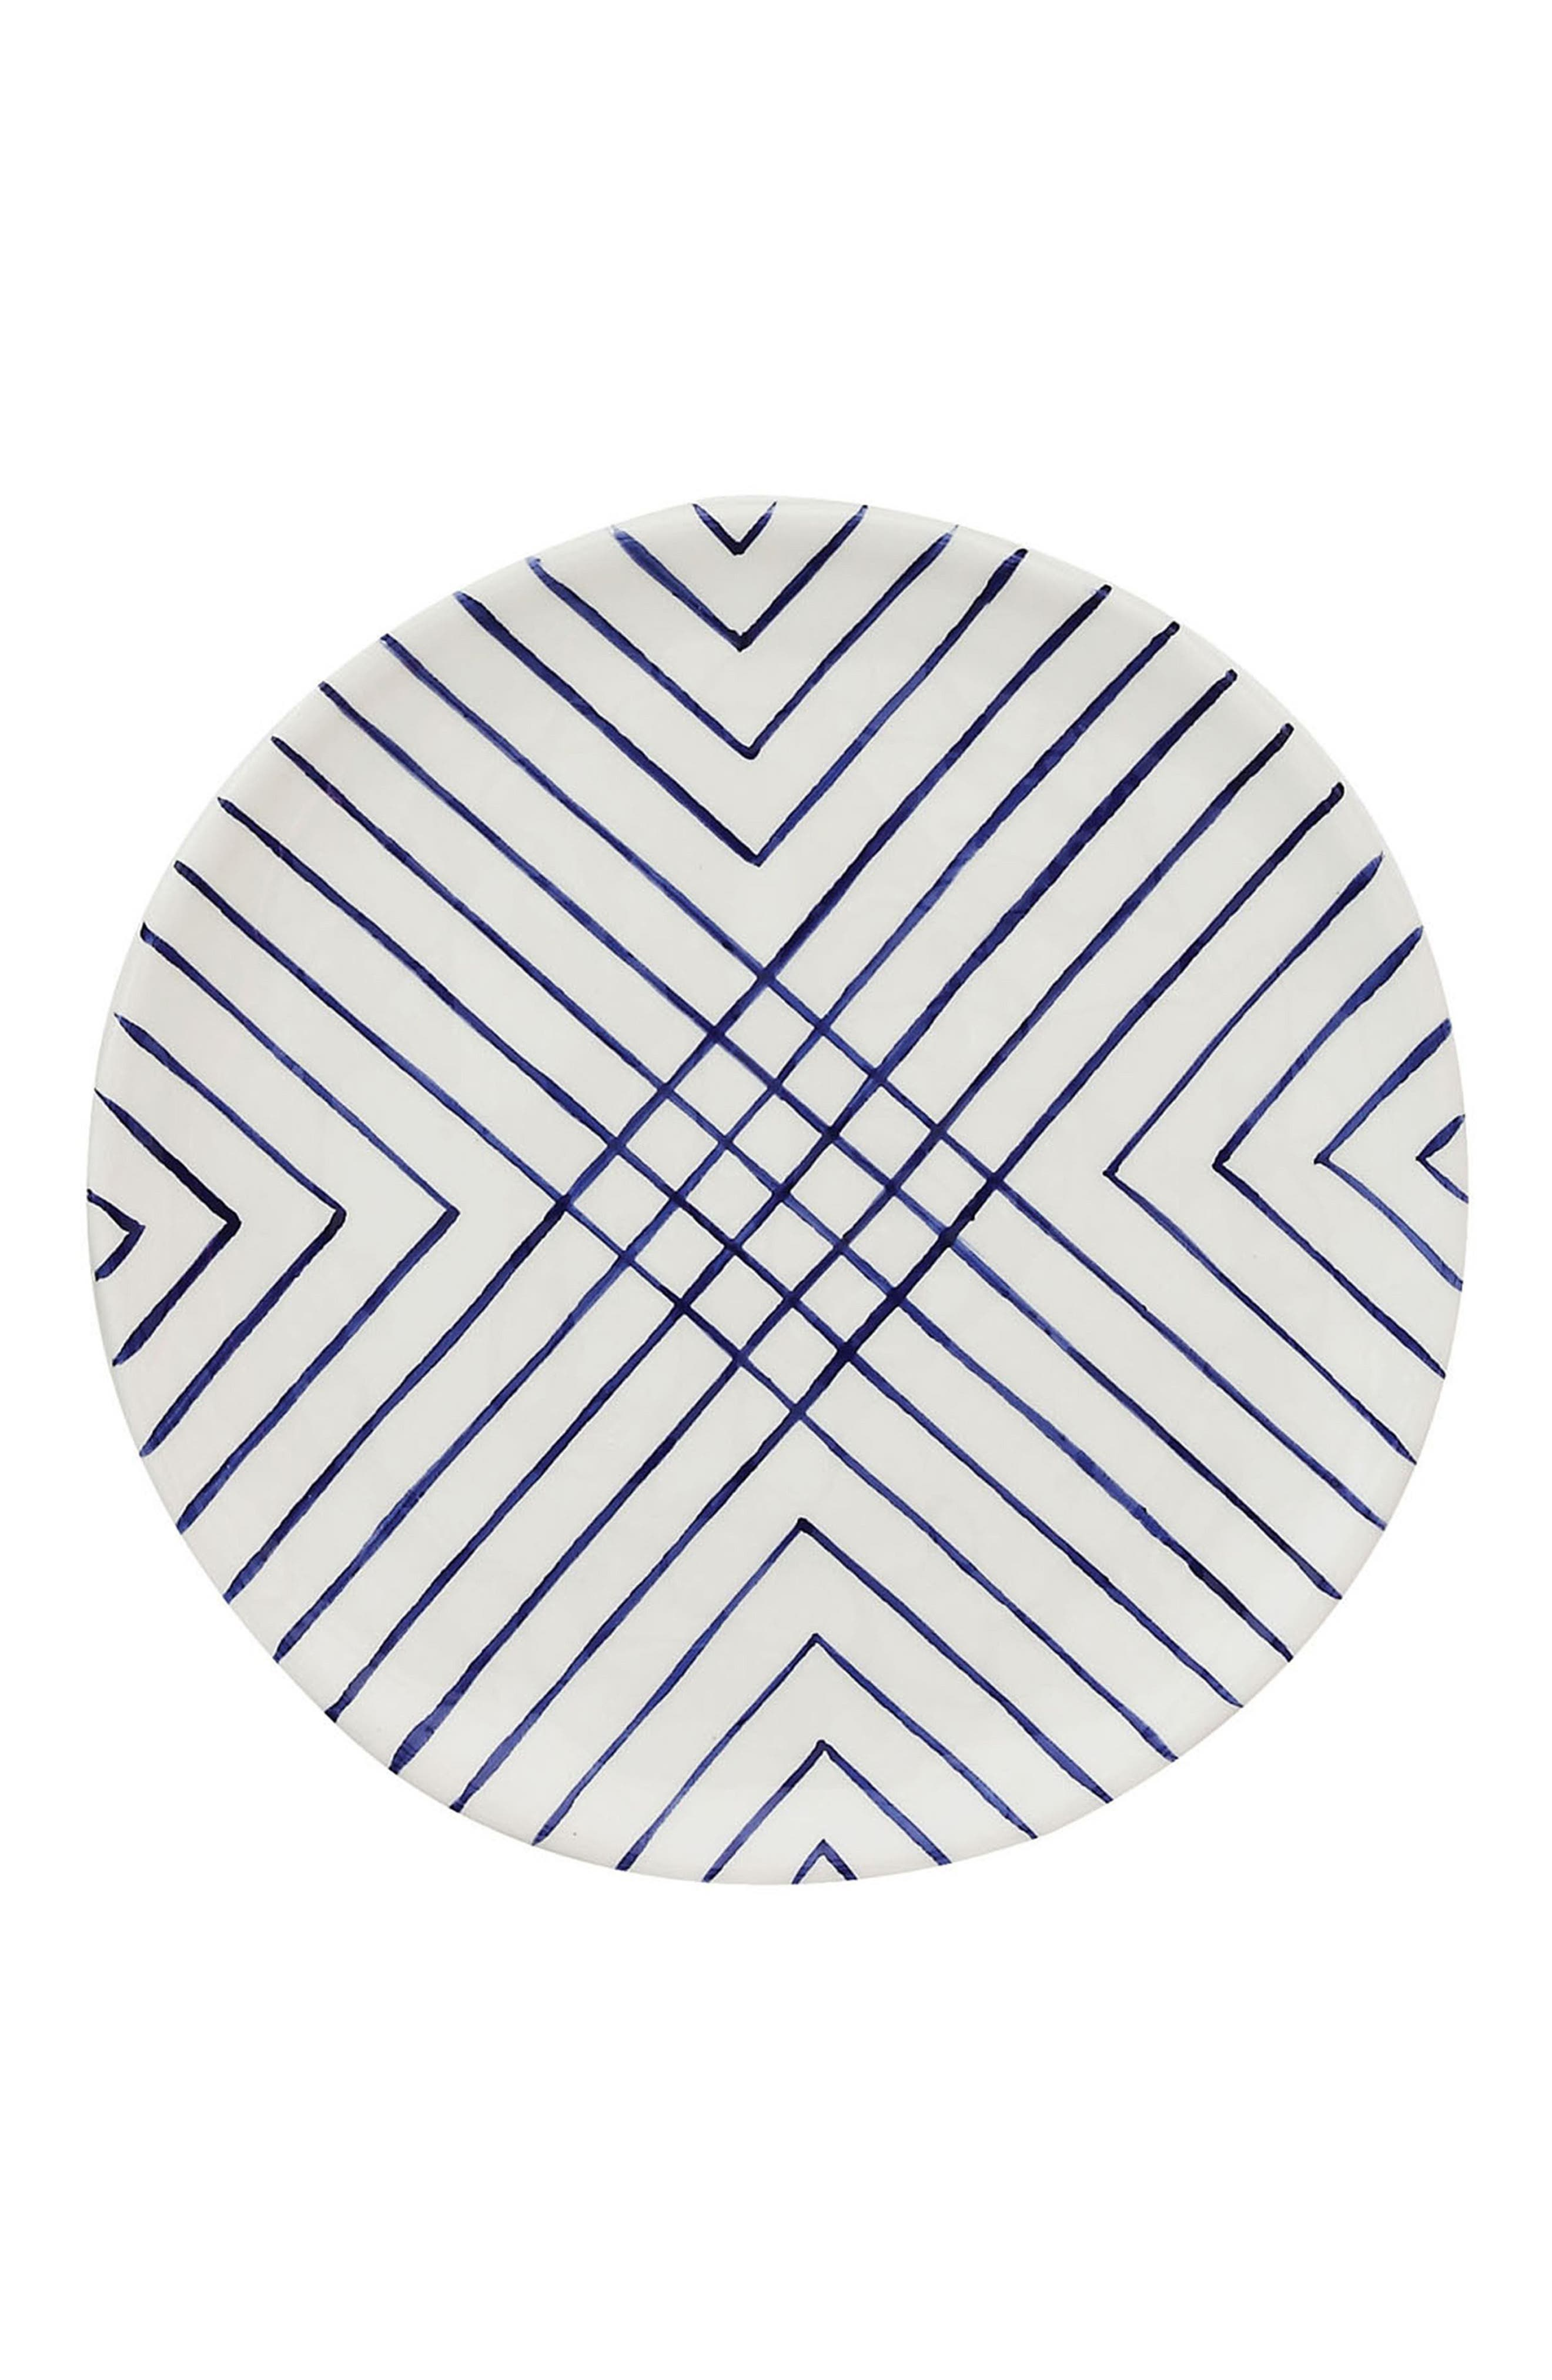 Blue & White Plate,                         Main,                         color, 400